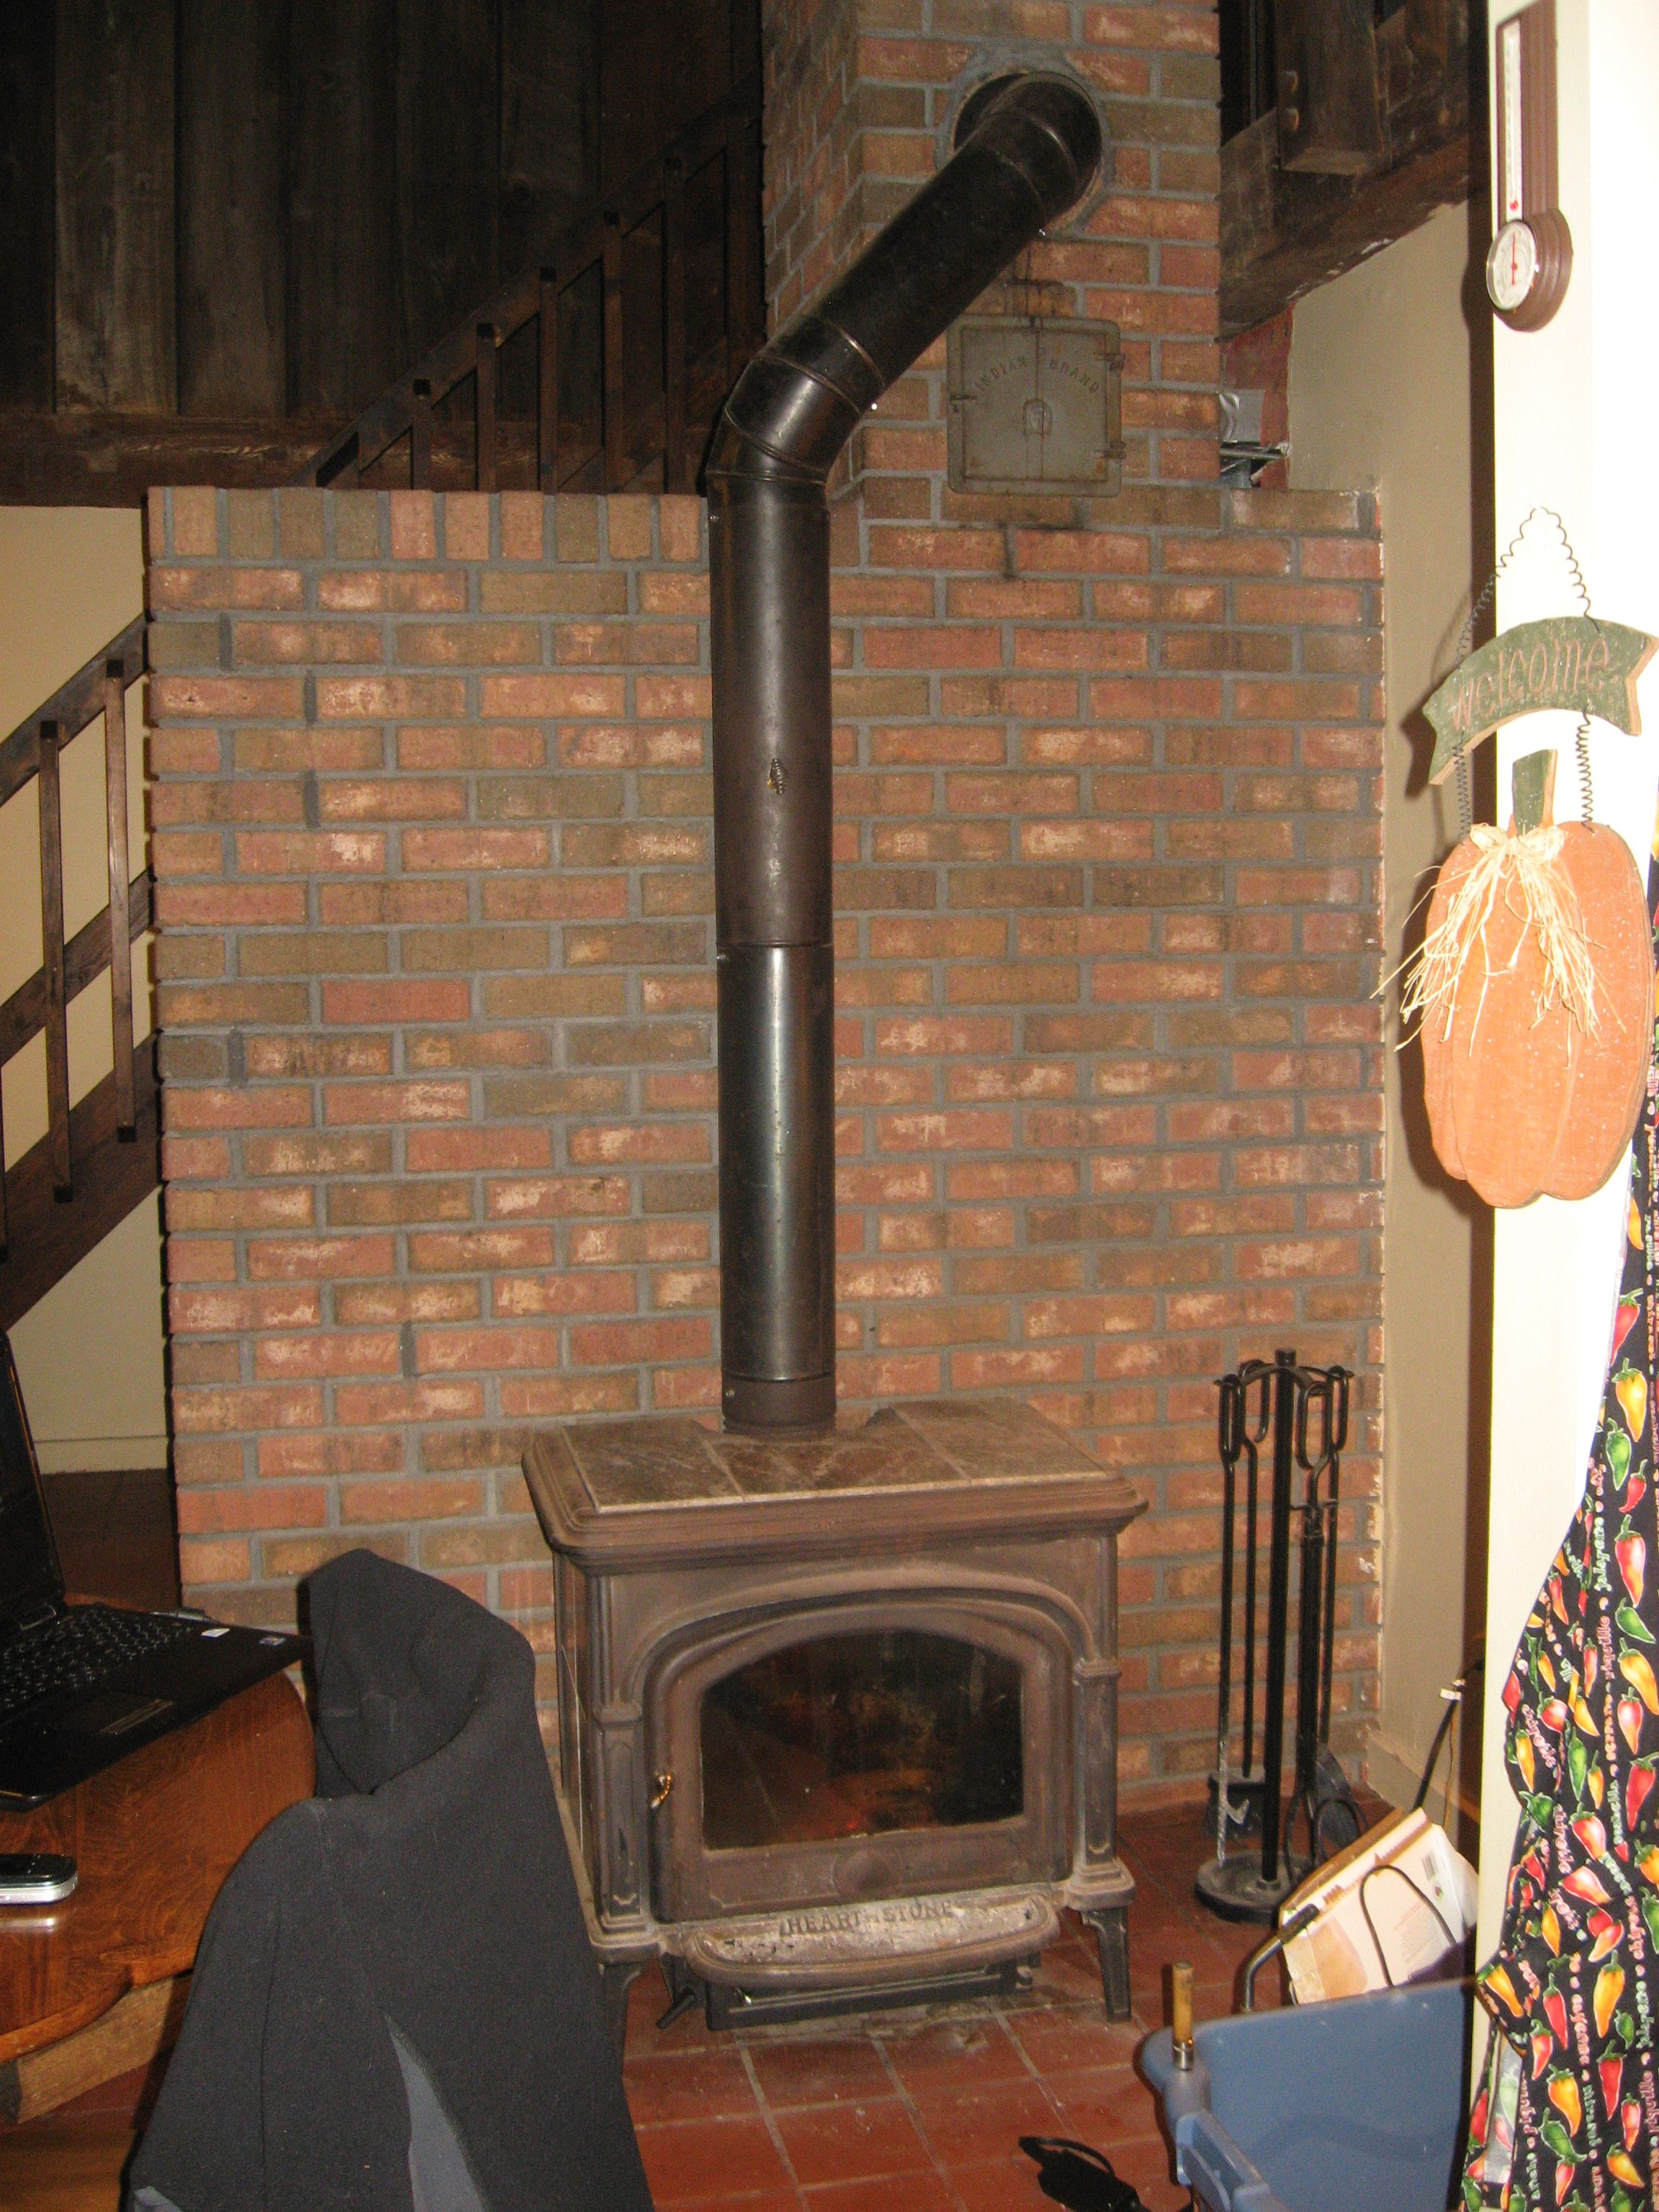 the russian fireplace behind the woodstove that whole brick mass